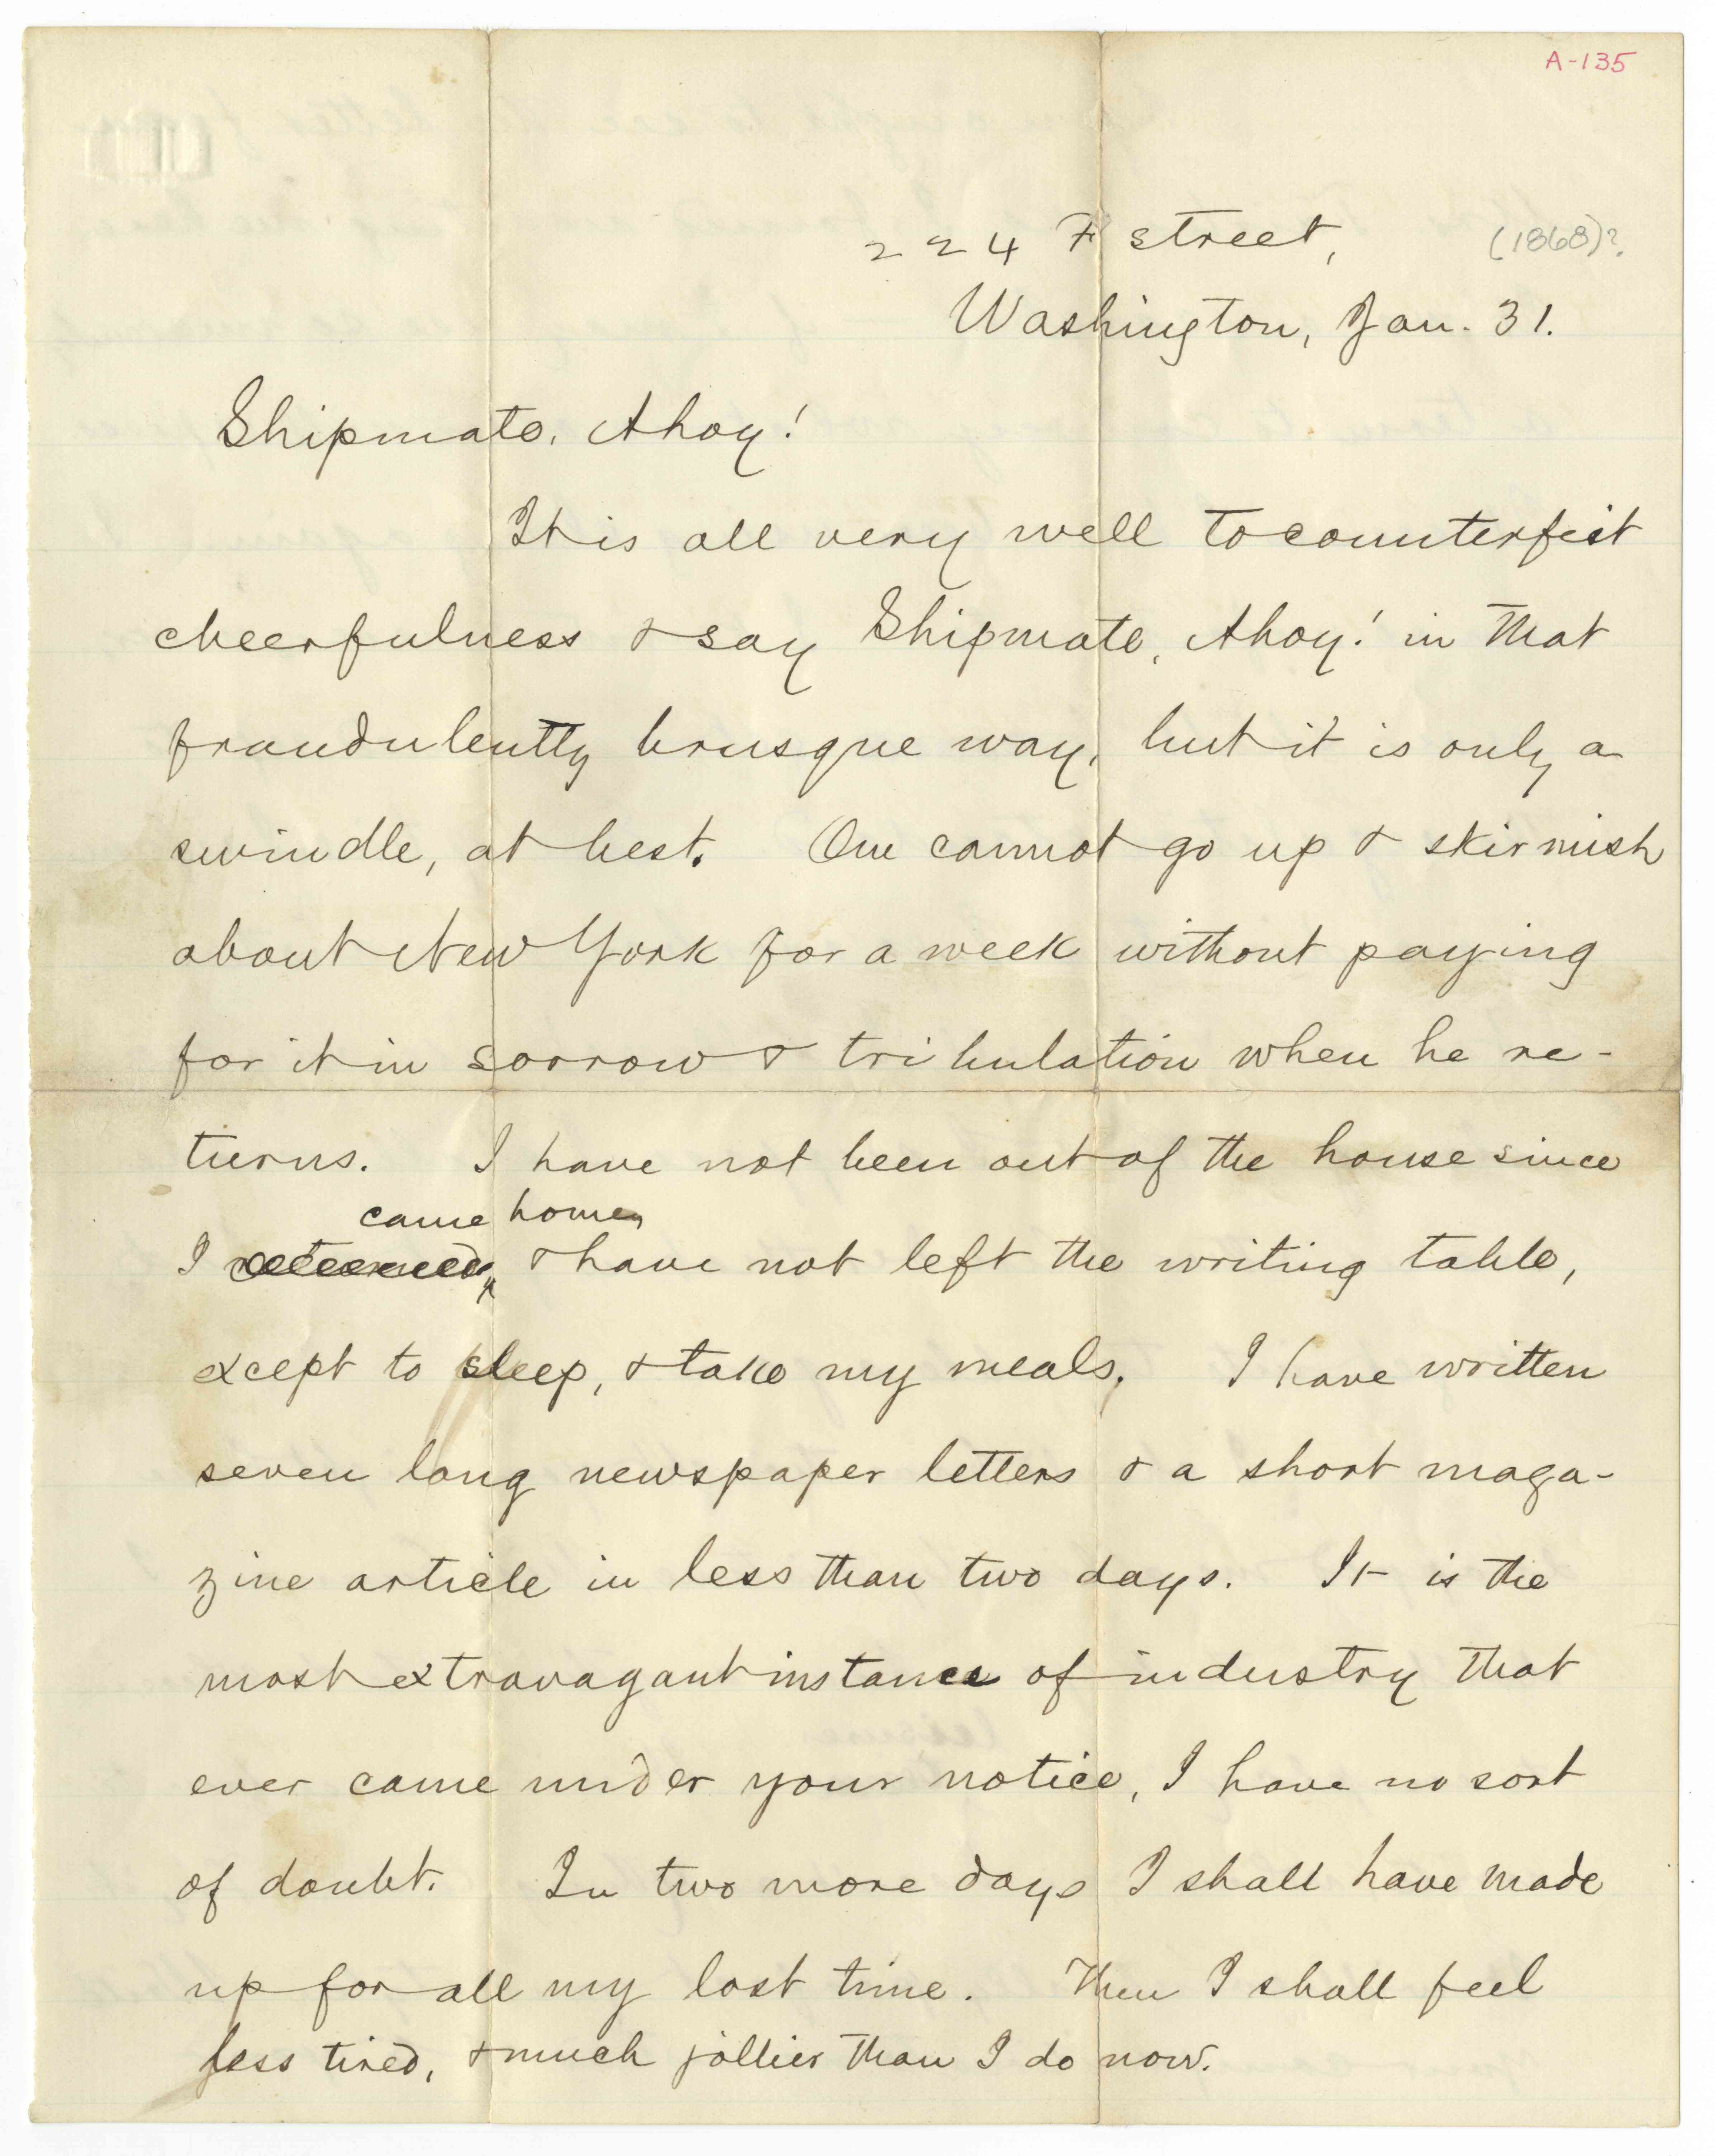 """Twain Asks His Young """"Quaker City"""" Shipmate & Favorite, Emma Beach, For Help With His Articles About the Voyage"""